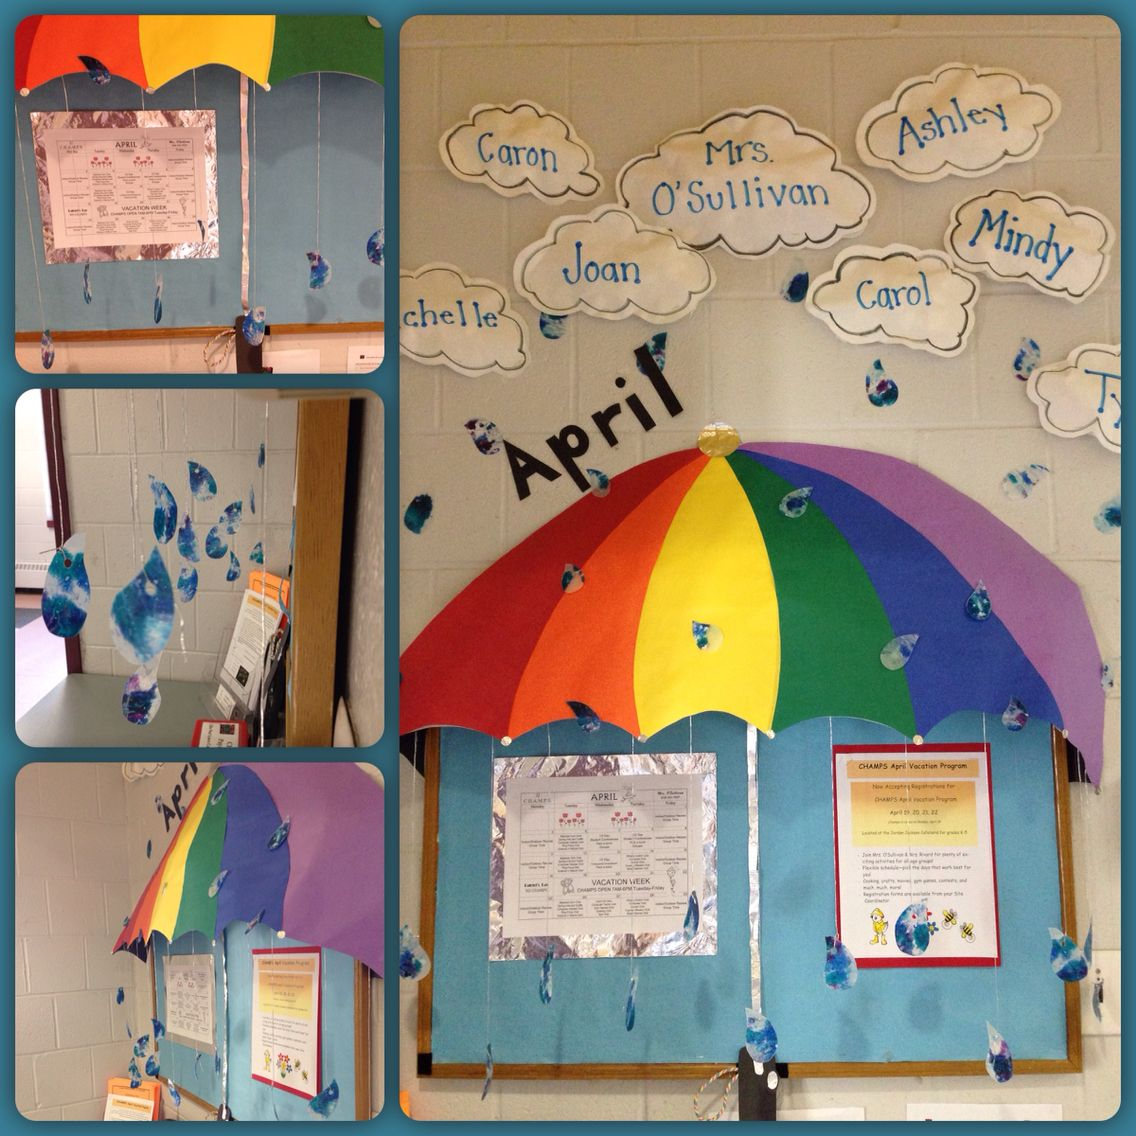 April Showers Bulletin Board Stuffed Paper Clouds Wax Paper Crayon Raindrops And 3d Umbrella April Bulletin Boards Bulletin Boards Paper Clouds